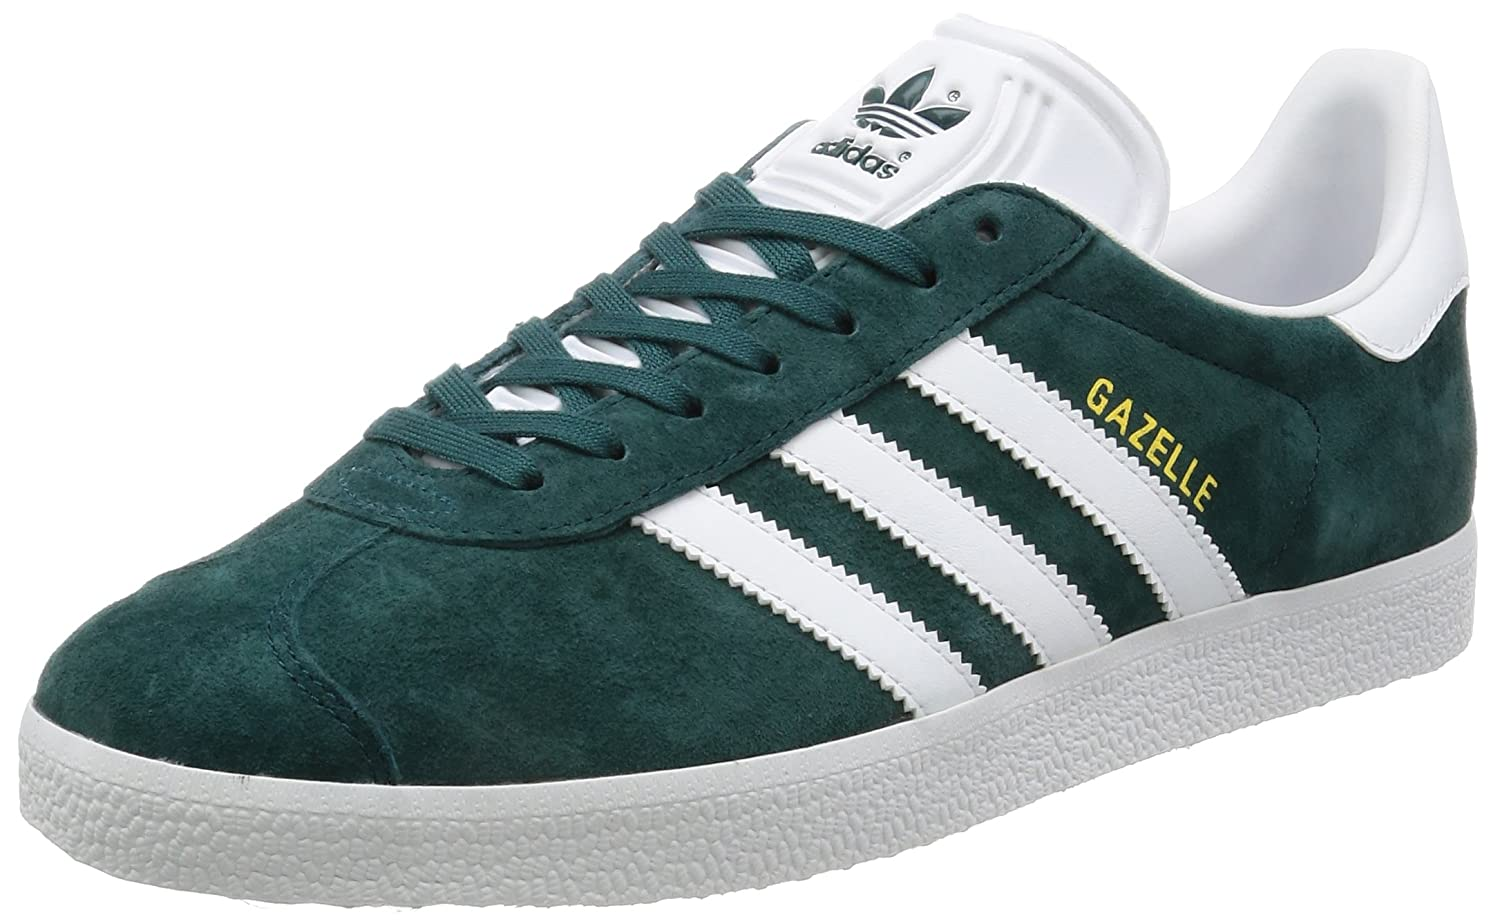 adidas Orignals Gazelle Mens Trainers Sneakers B01N4UHDRM 6 D(M) US|Green Whtie Gold Metallic Bb5253